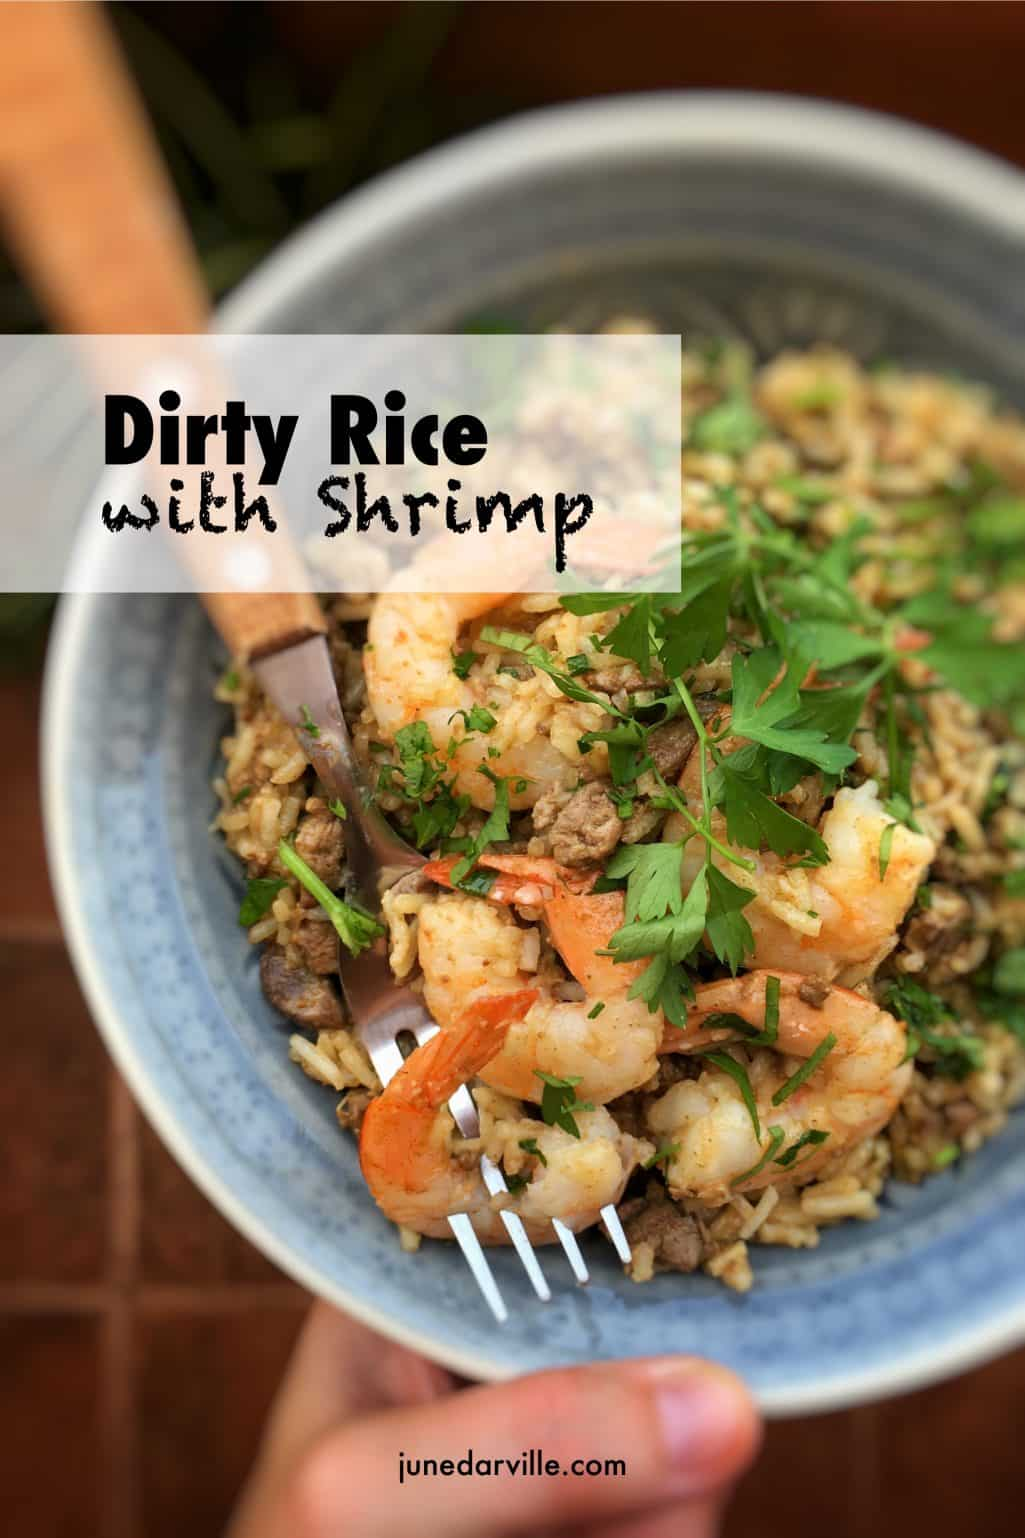 Dirty Rice with Shrimp Recipe